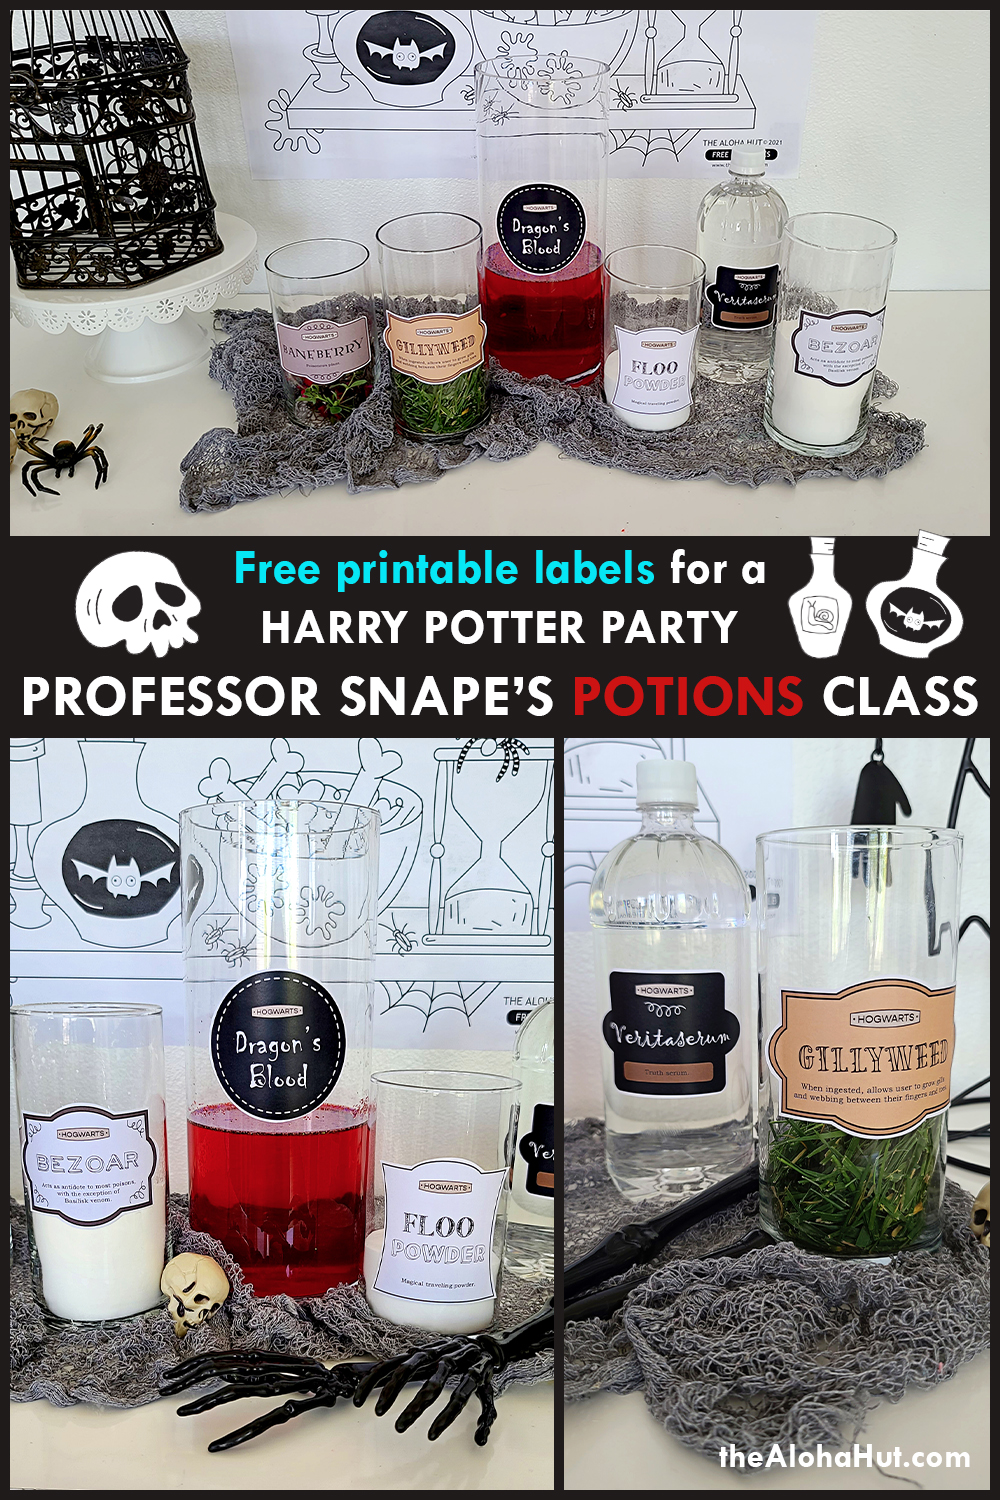 Harry Potter Party Potions Class by the Aloha Hut